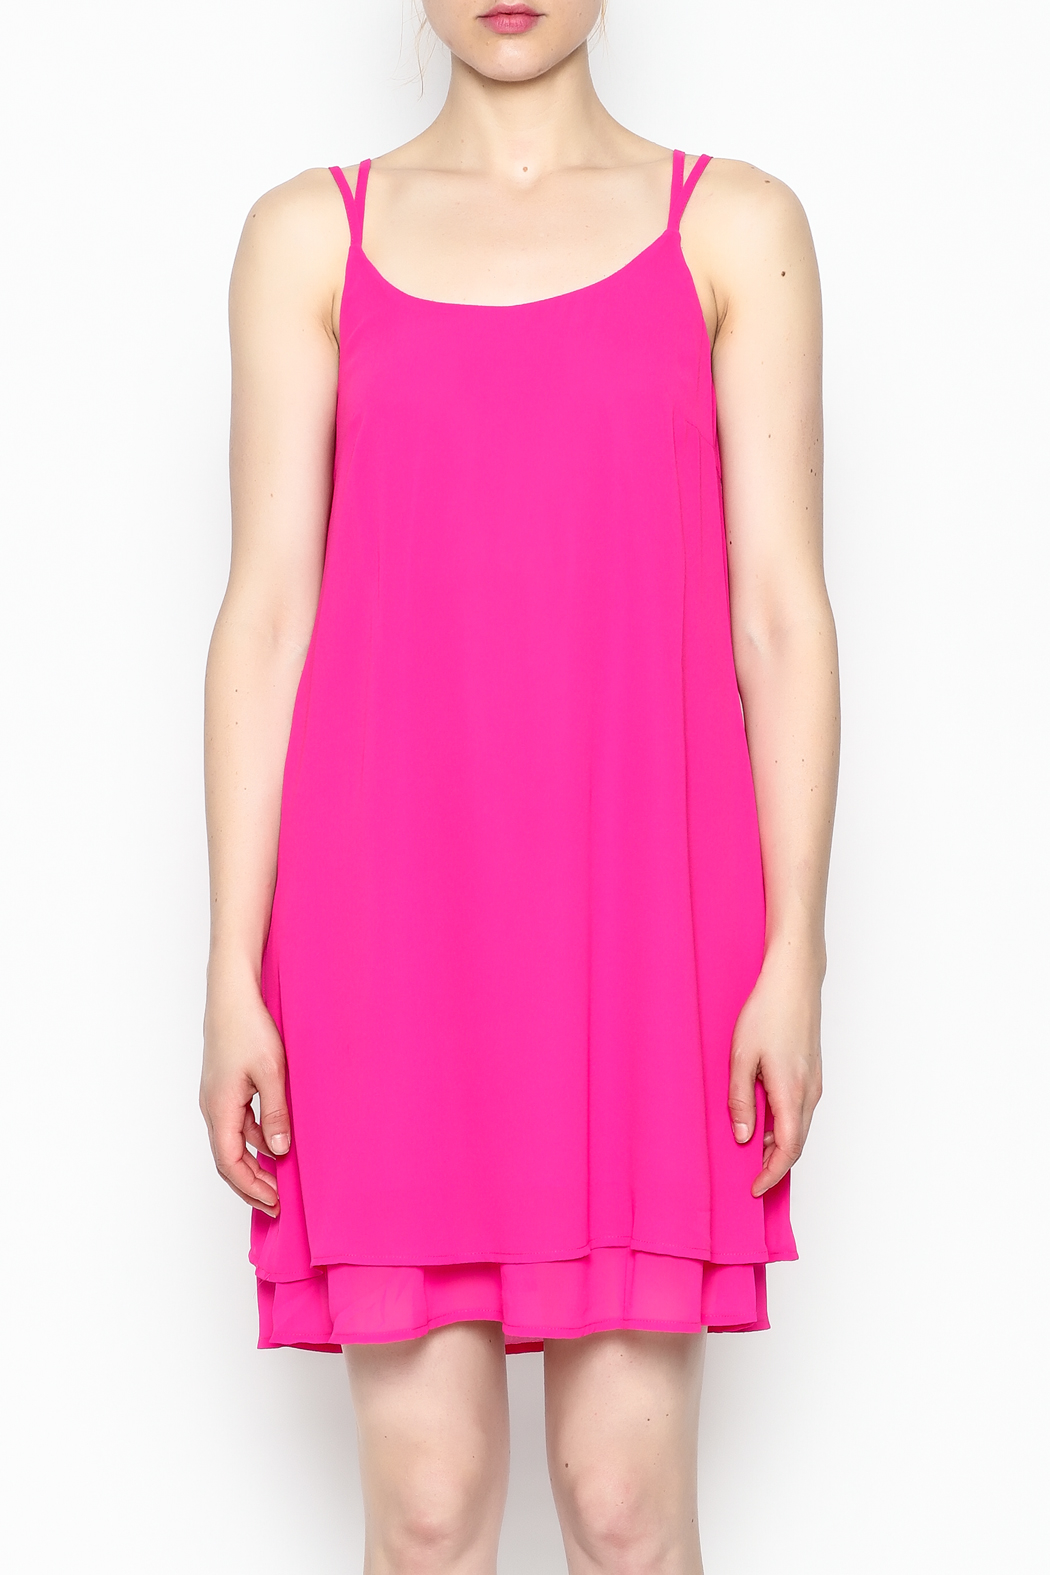 HYFVE Fuchsia Dress - Front Full Image